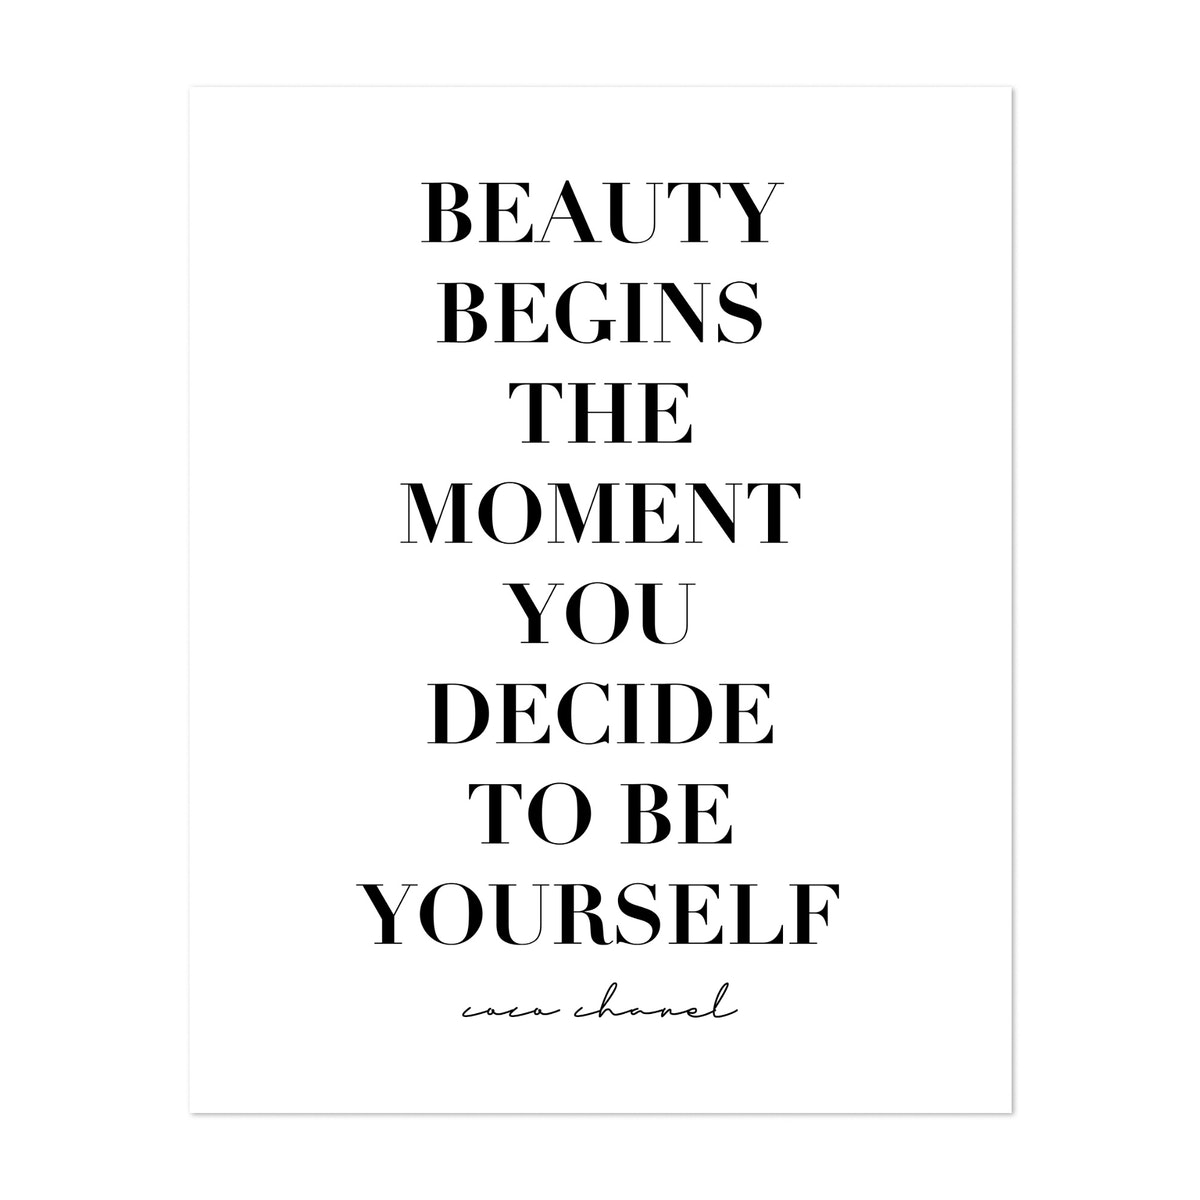 Beauty Begins the Moment You Decide to Be Yourself. -Coco Chanel Quote